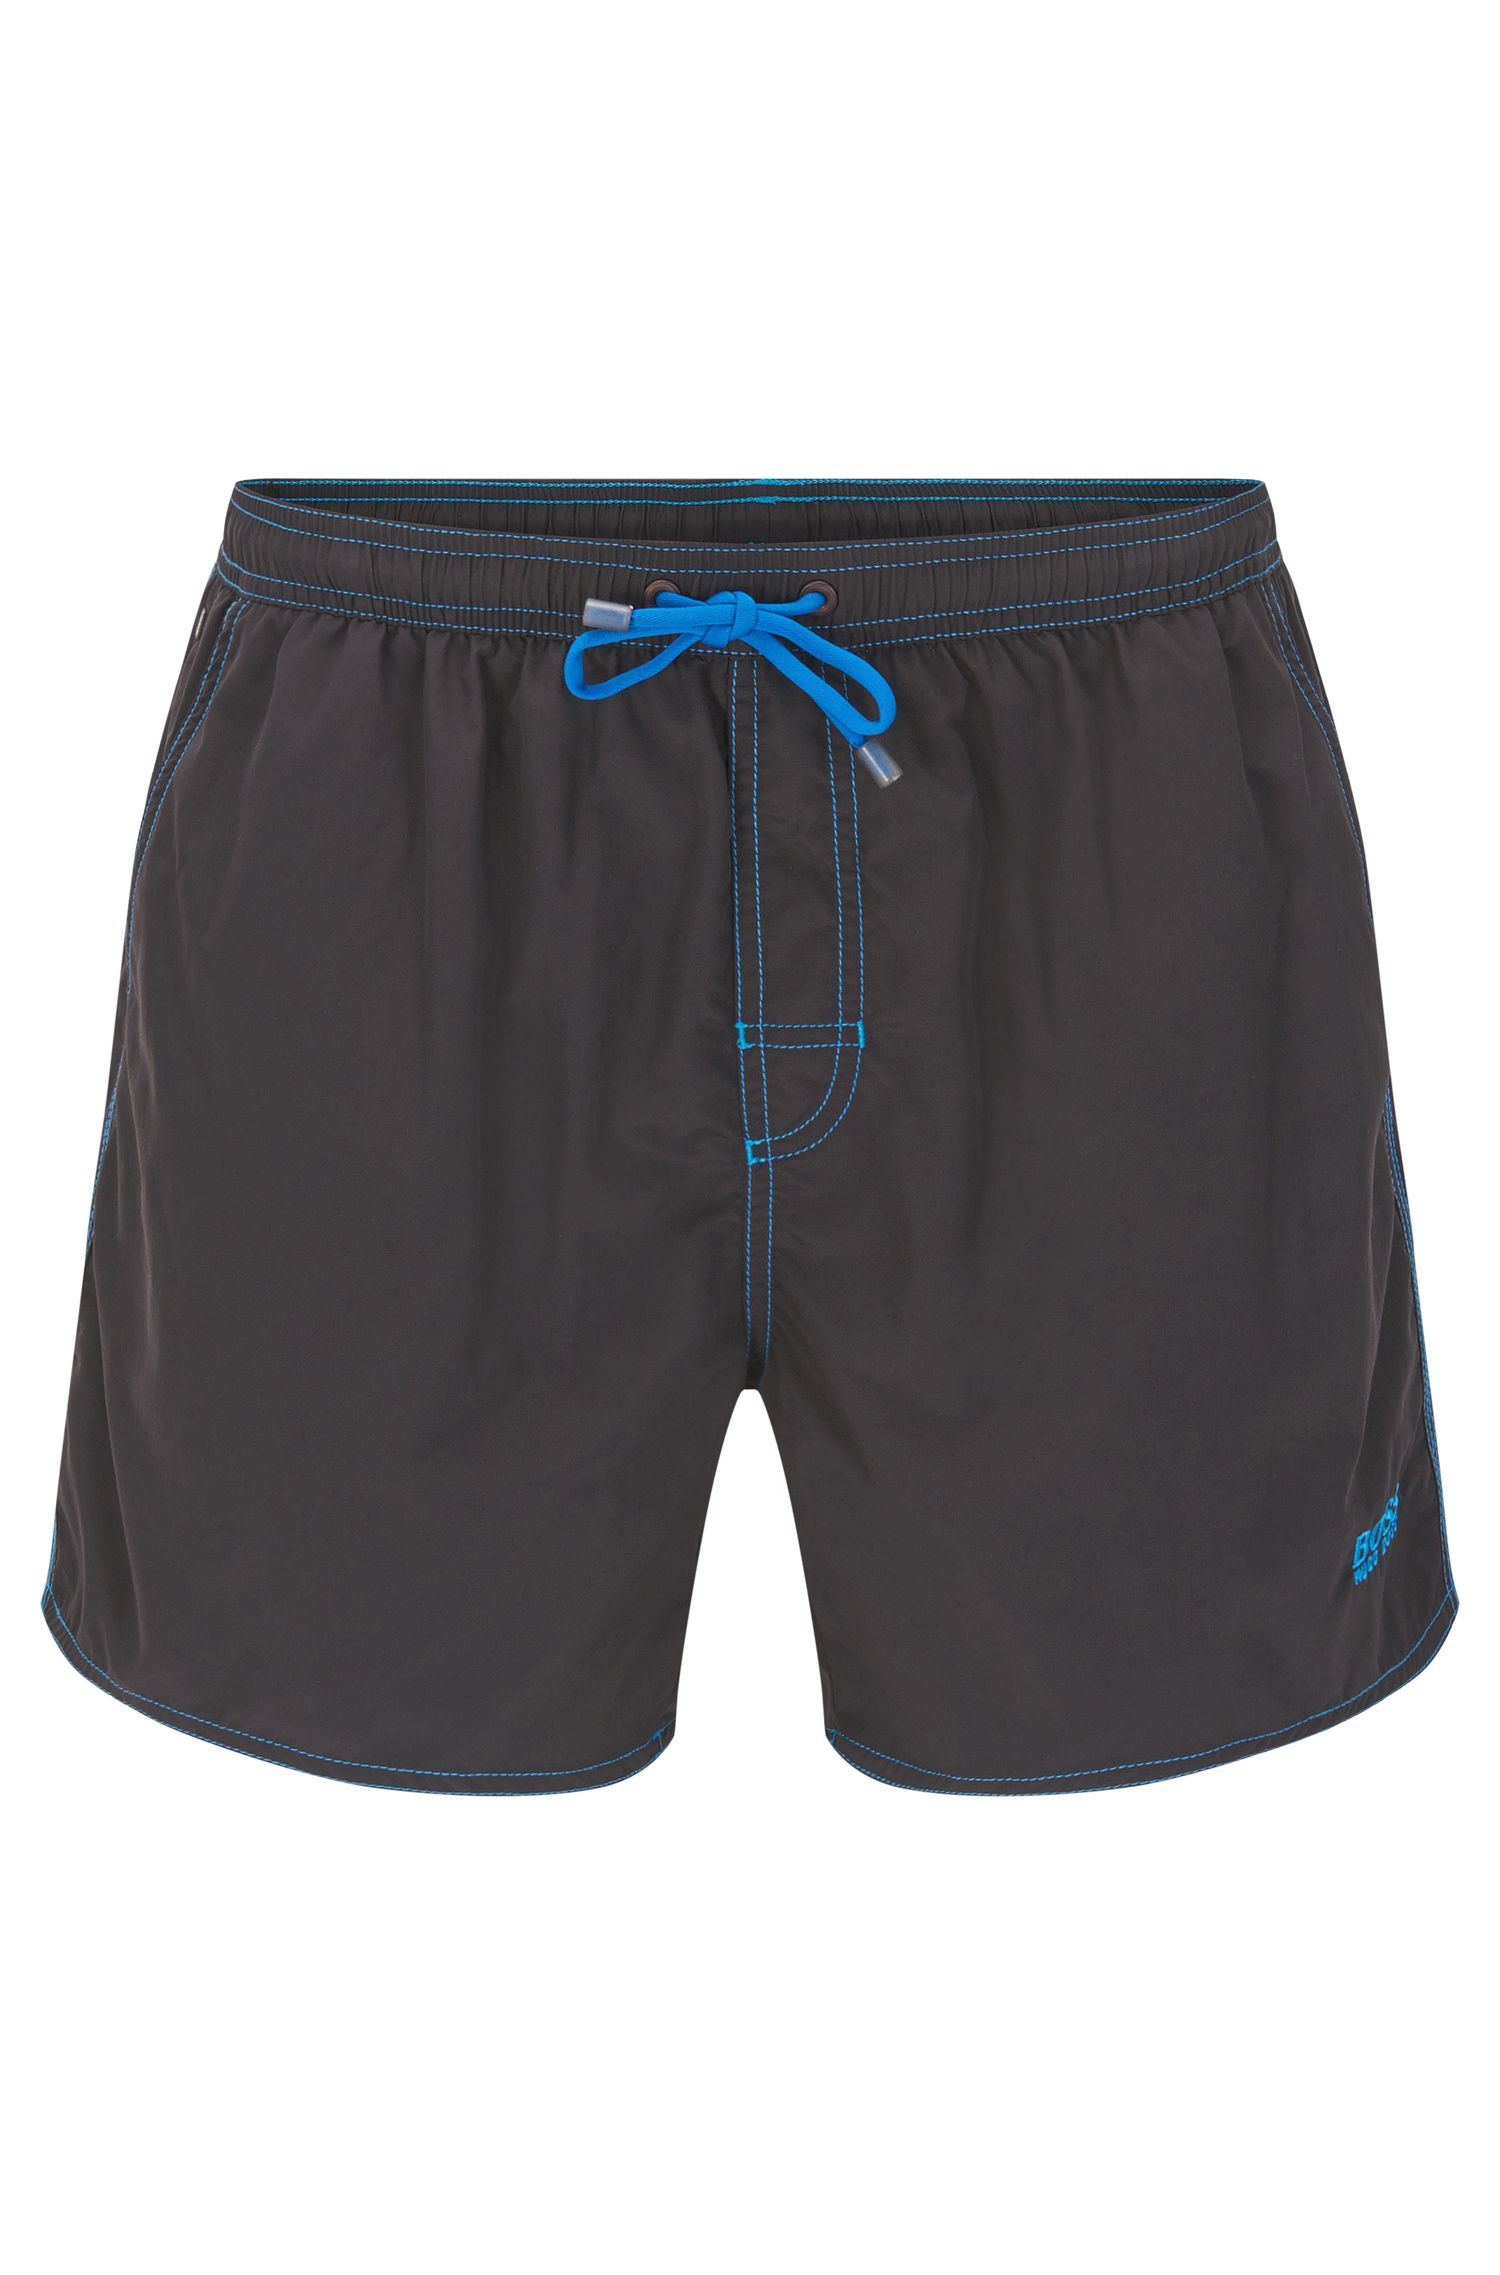 'Lobster' | Quick Dry Swim Trunks